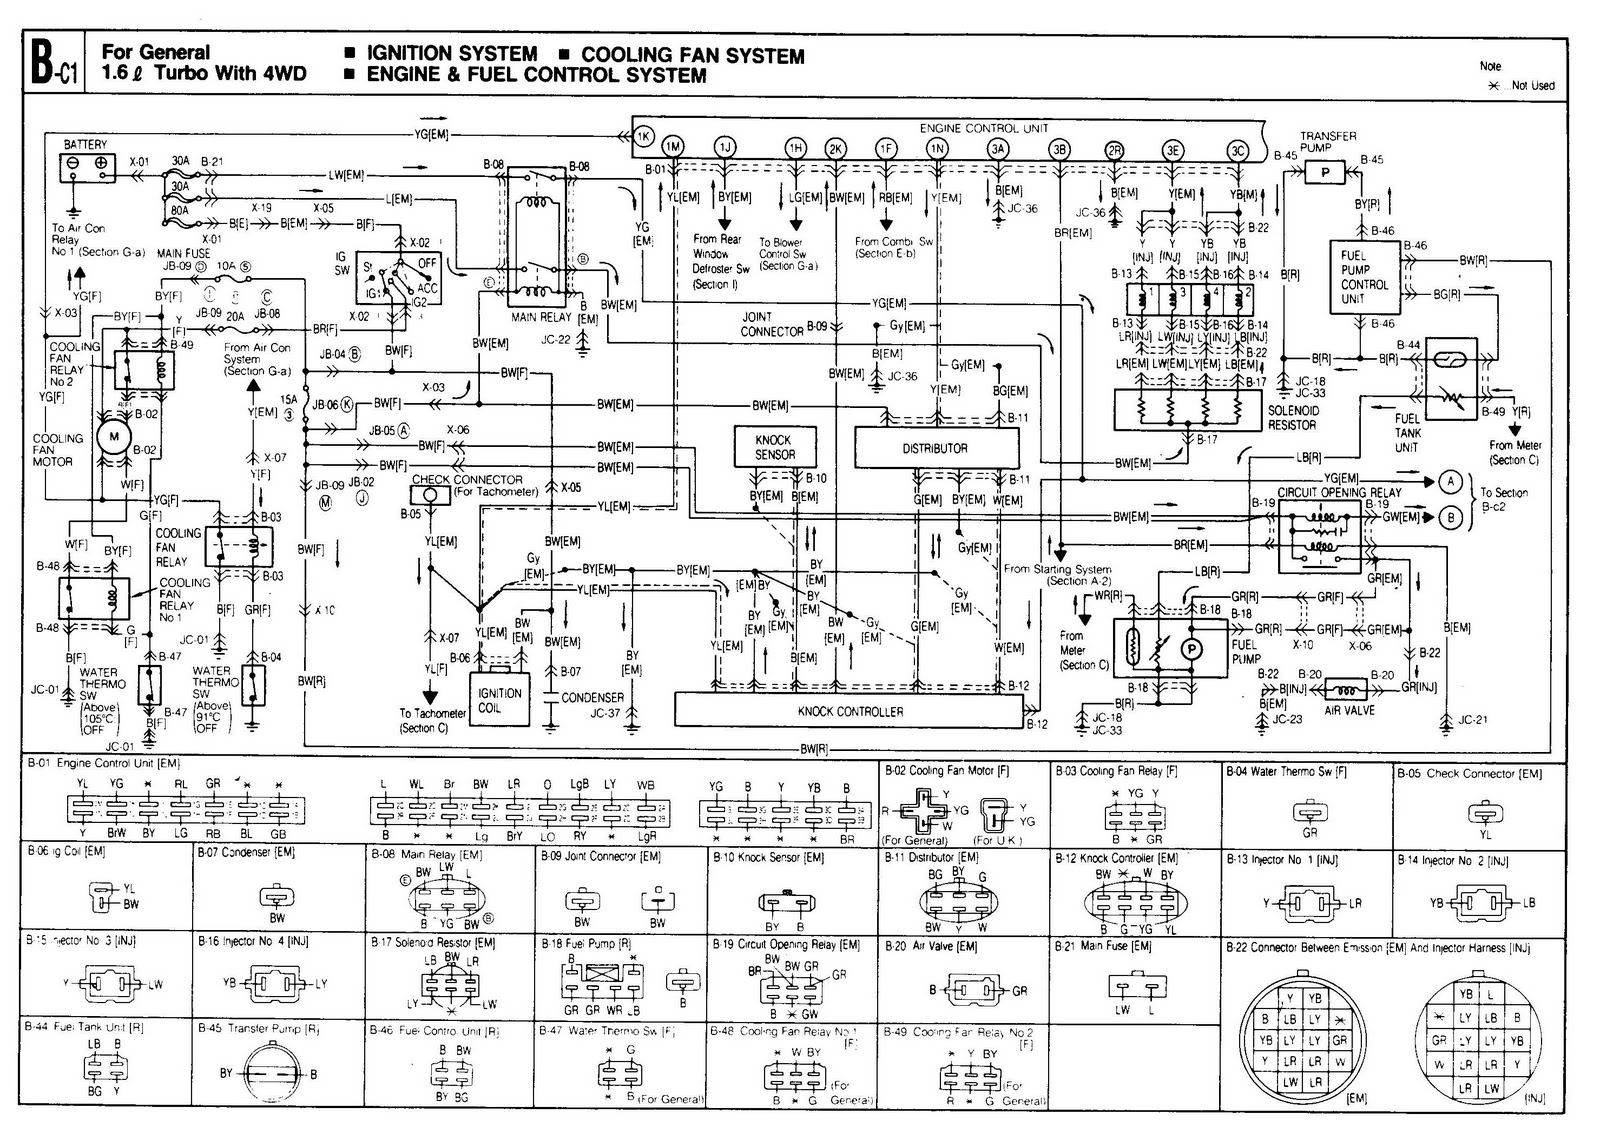 2005 tahoe engine diagram wiring diagram photos for help your